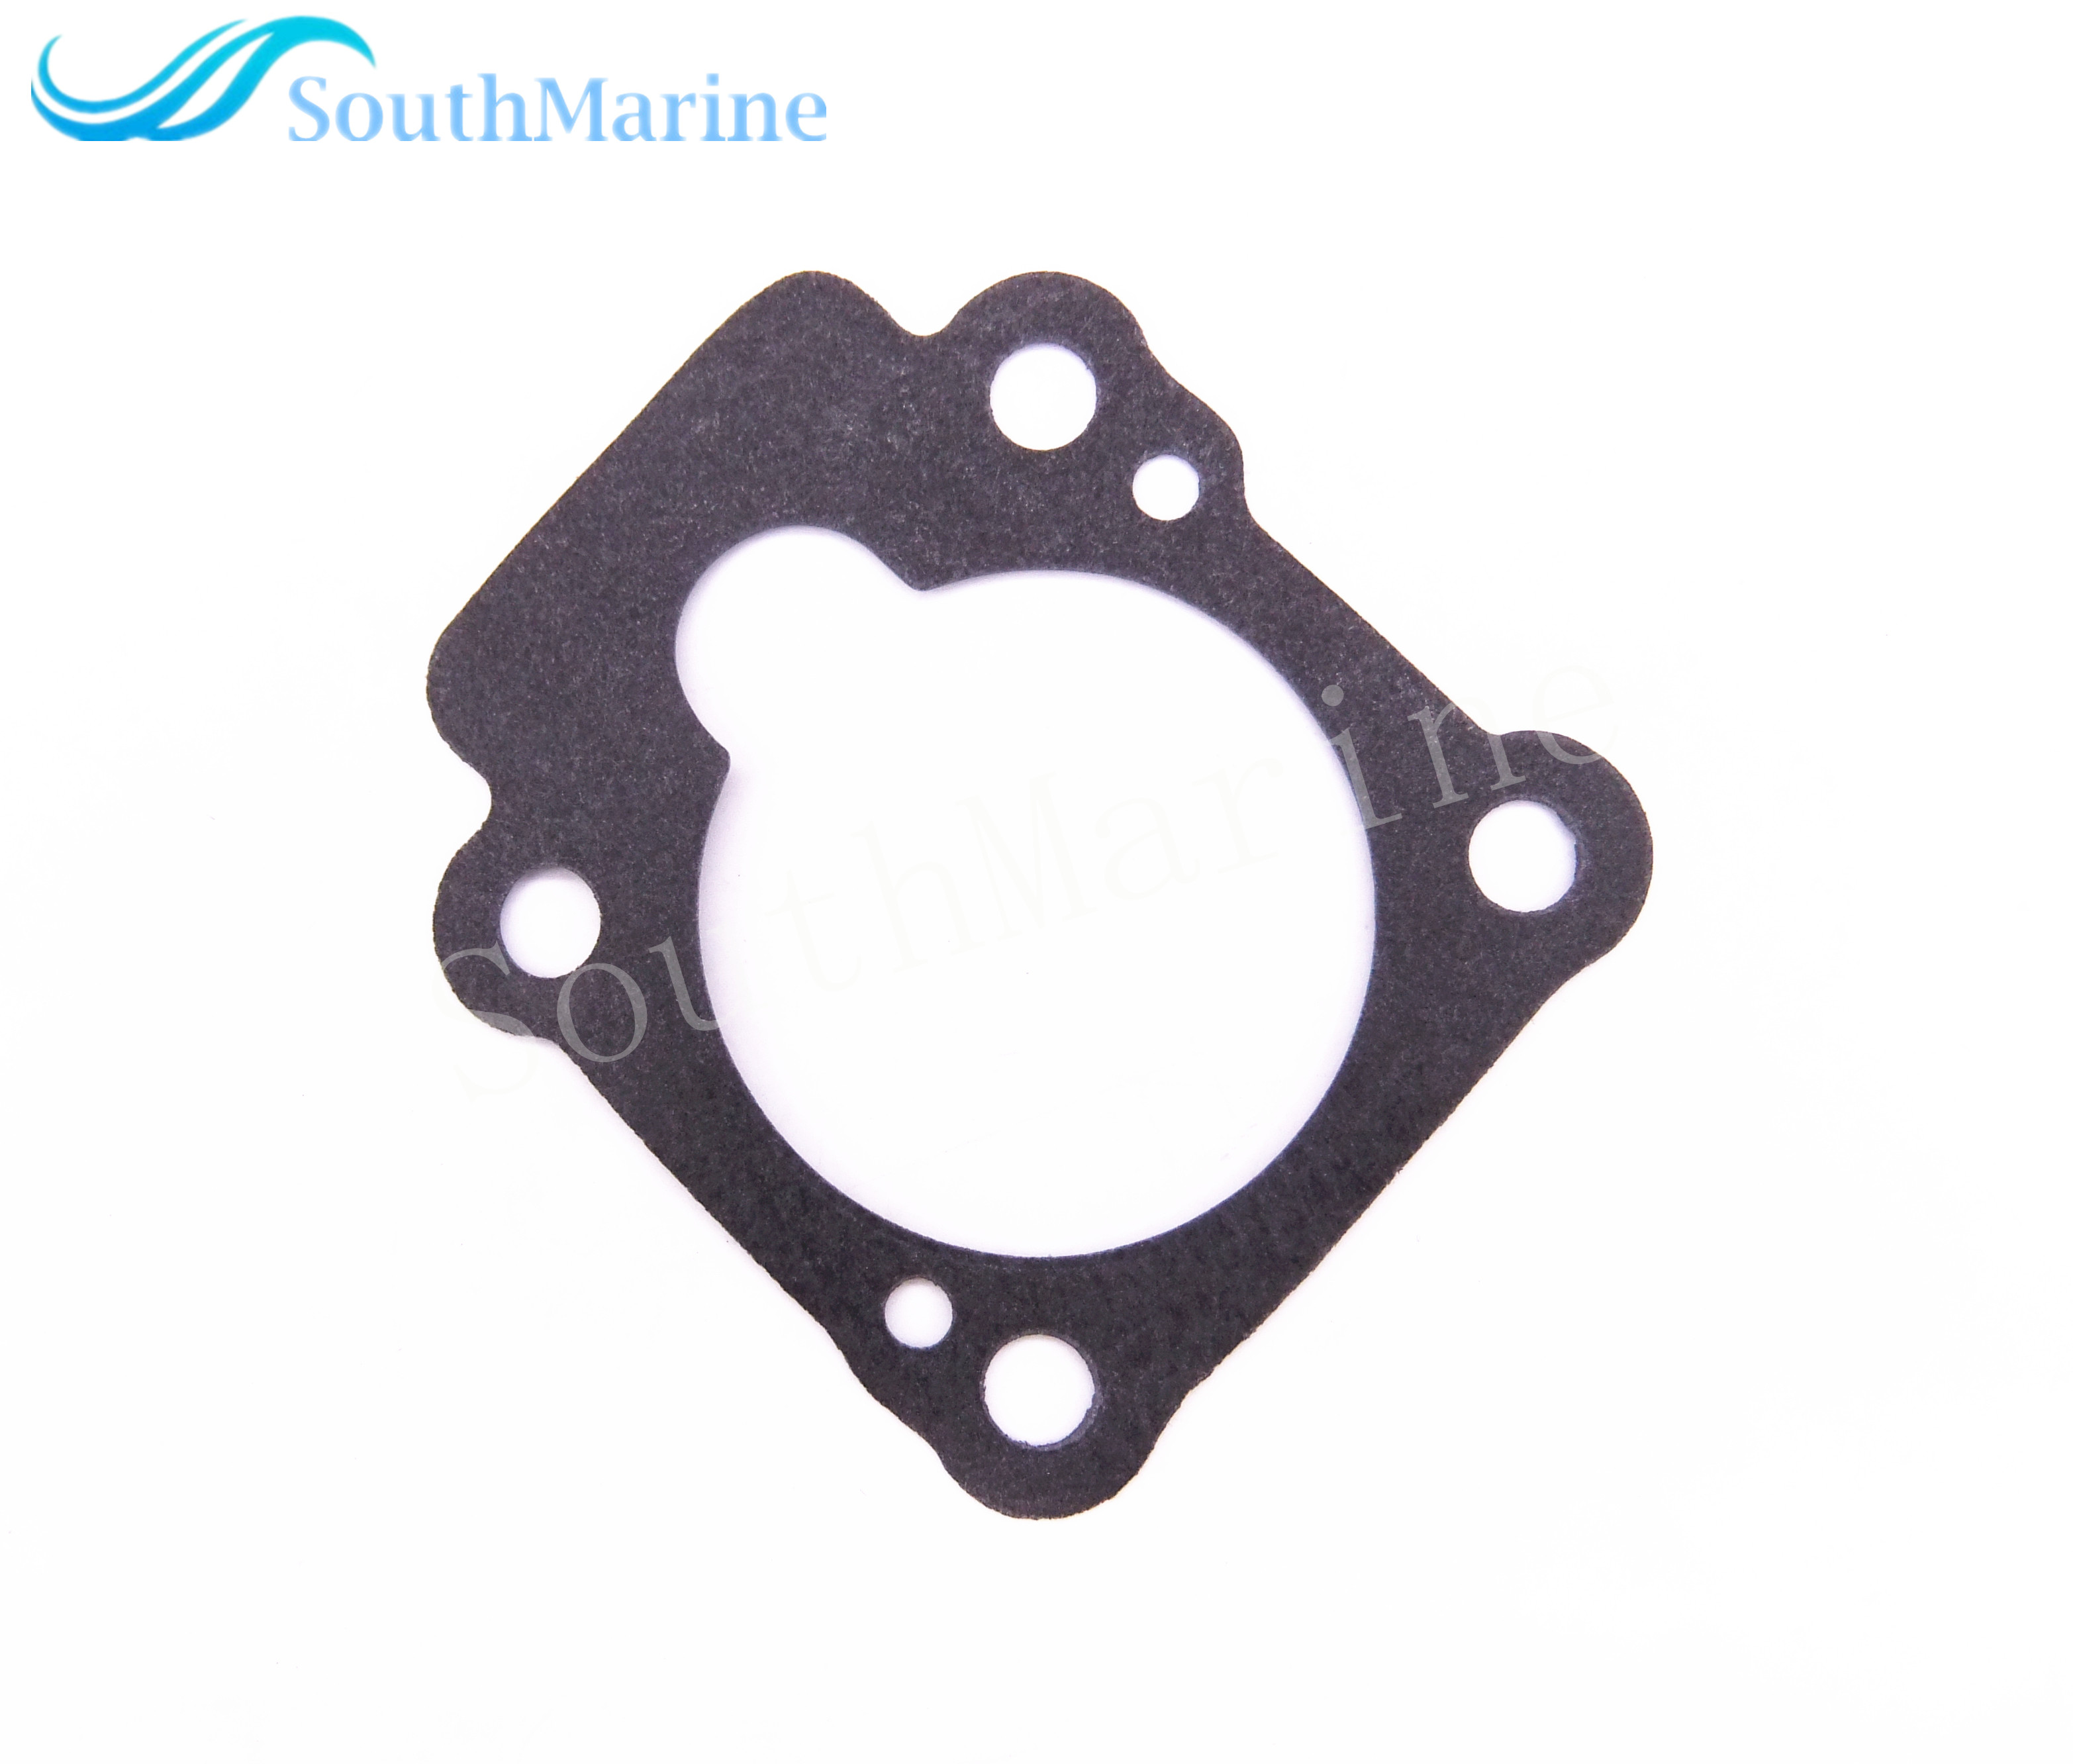 Outboard Engine 9.8F-06.11 Water Pump Case Gasket for Hidea 2-Stroke 9.8F 8F 6F Boat Motor Free Shipping